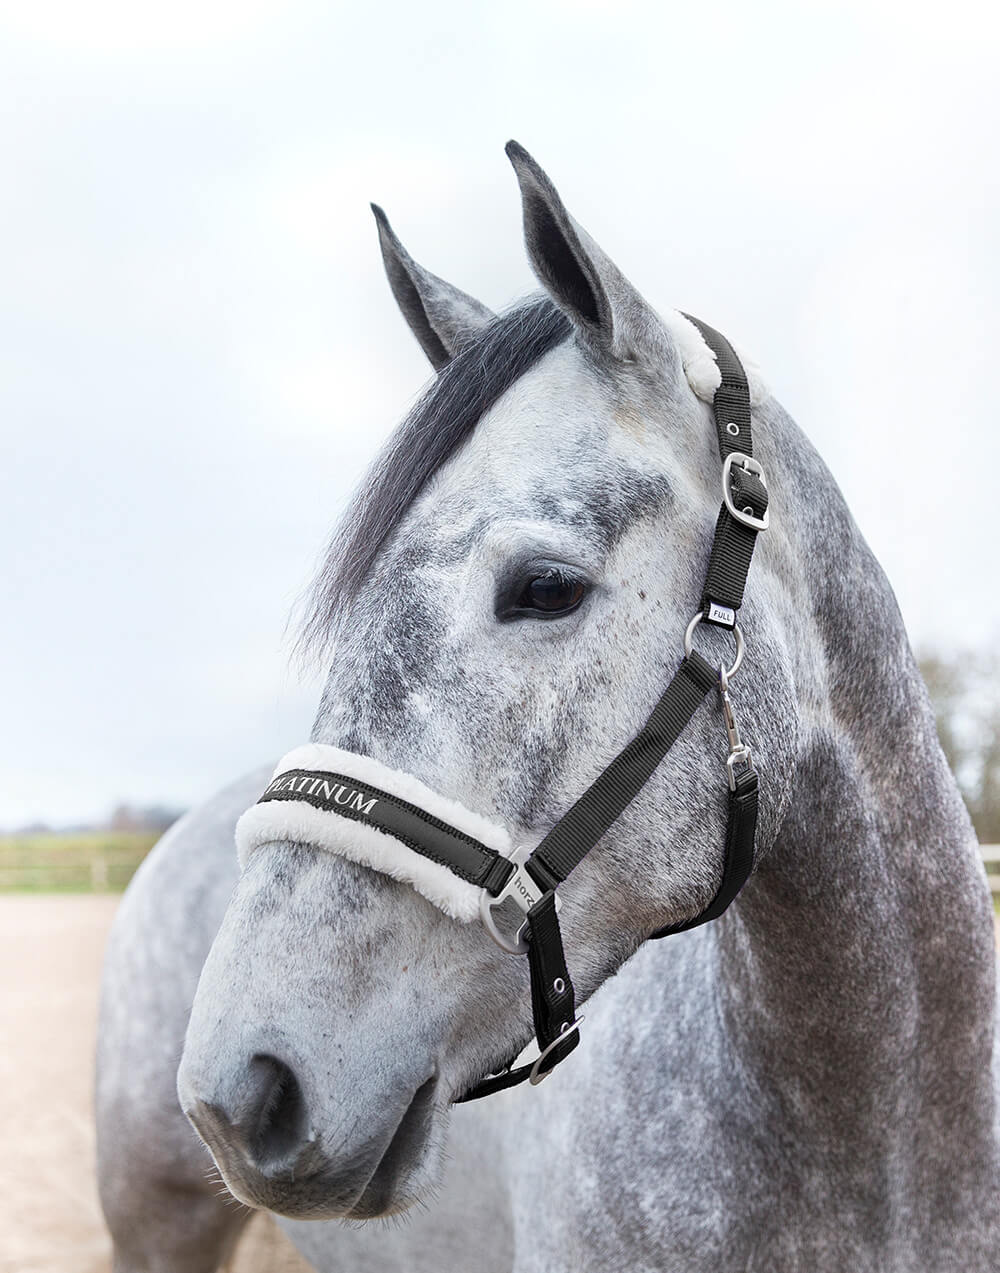 Durable classy nylon halter with faux fur padding on poll and nose, embroidery, metal fittings and adjustable at the noseband and headpiece